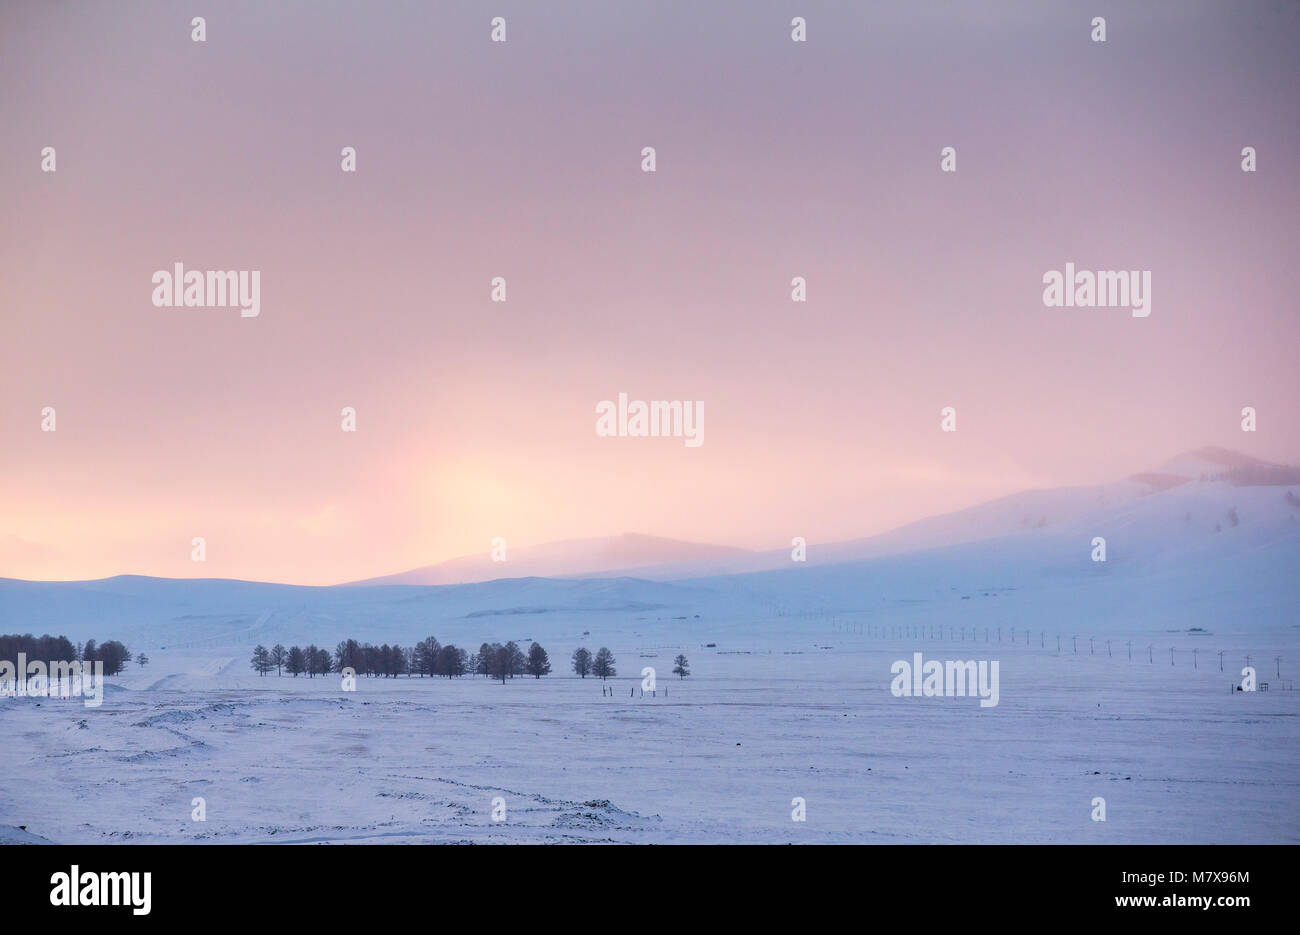 sunset in a snowy northern Mongolian landscape - Stock Image